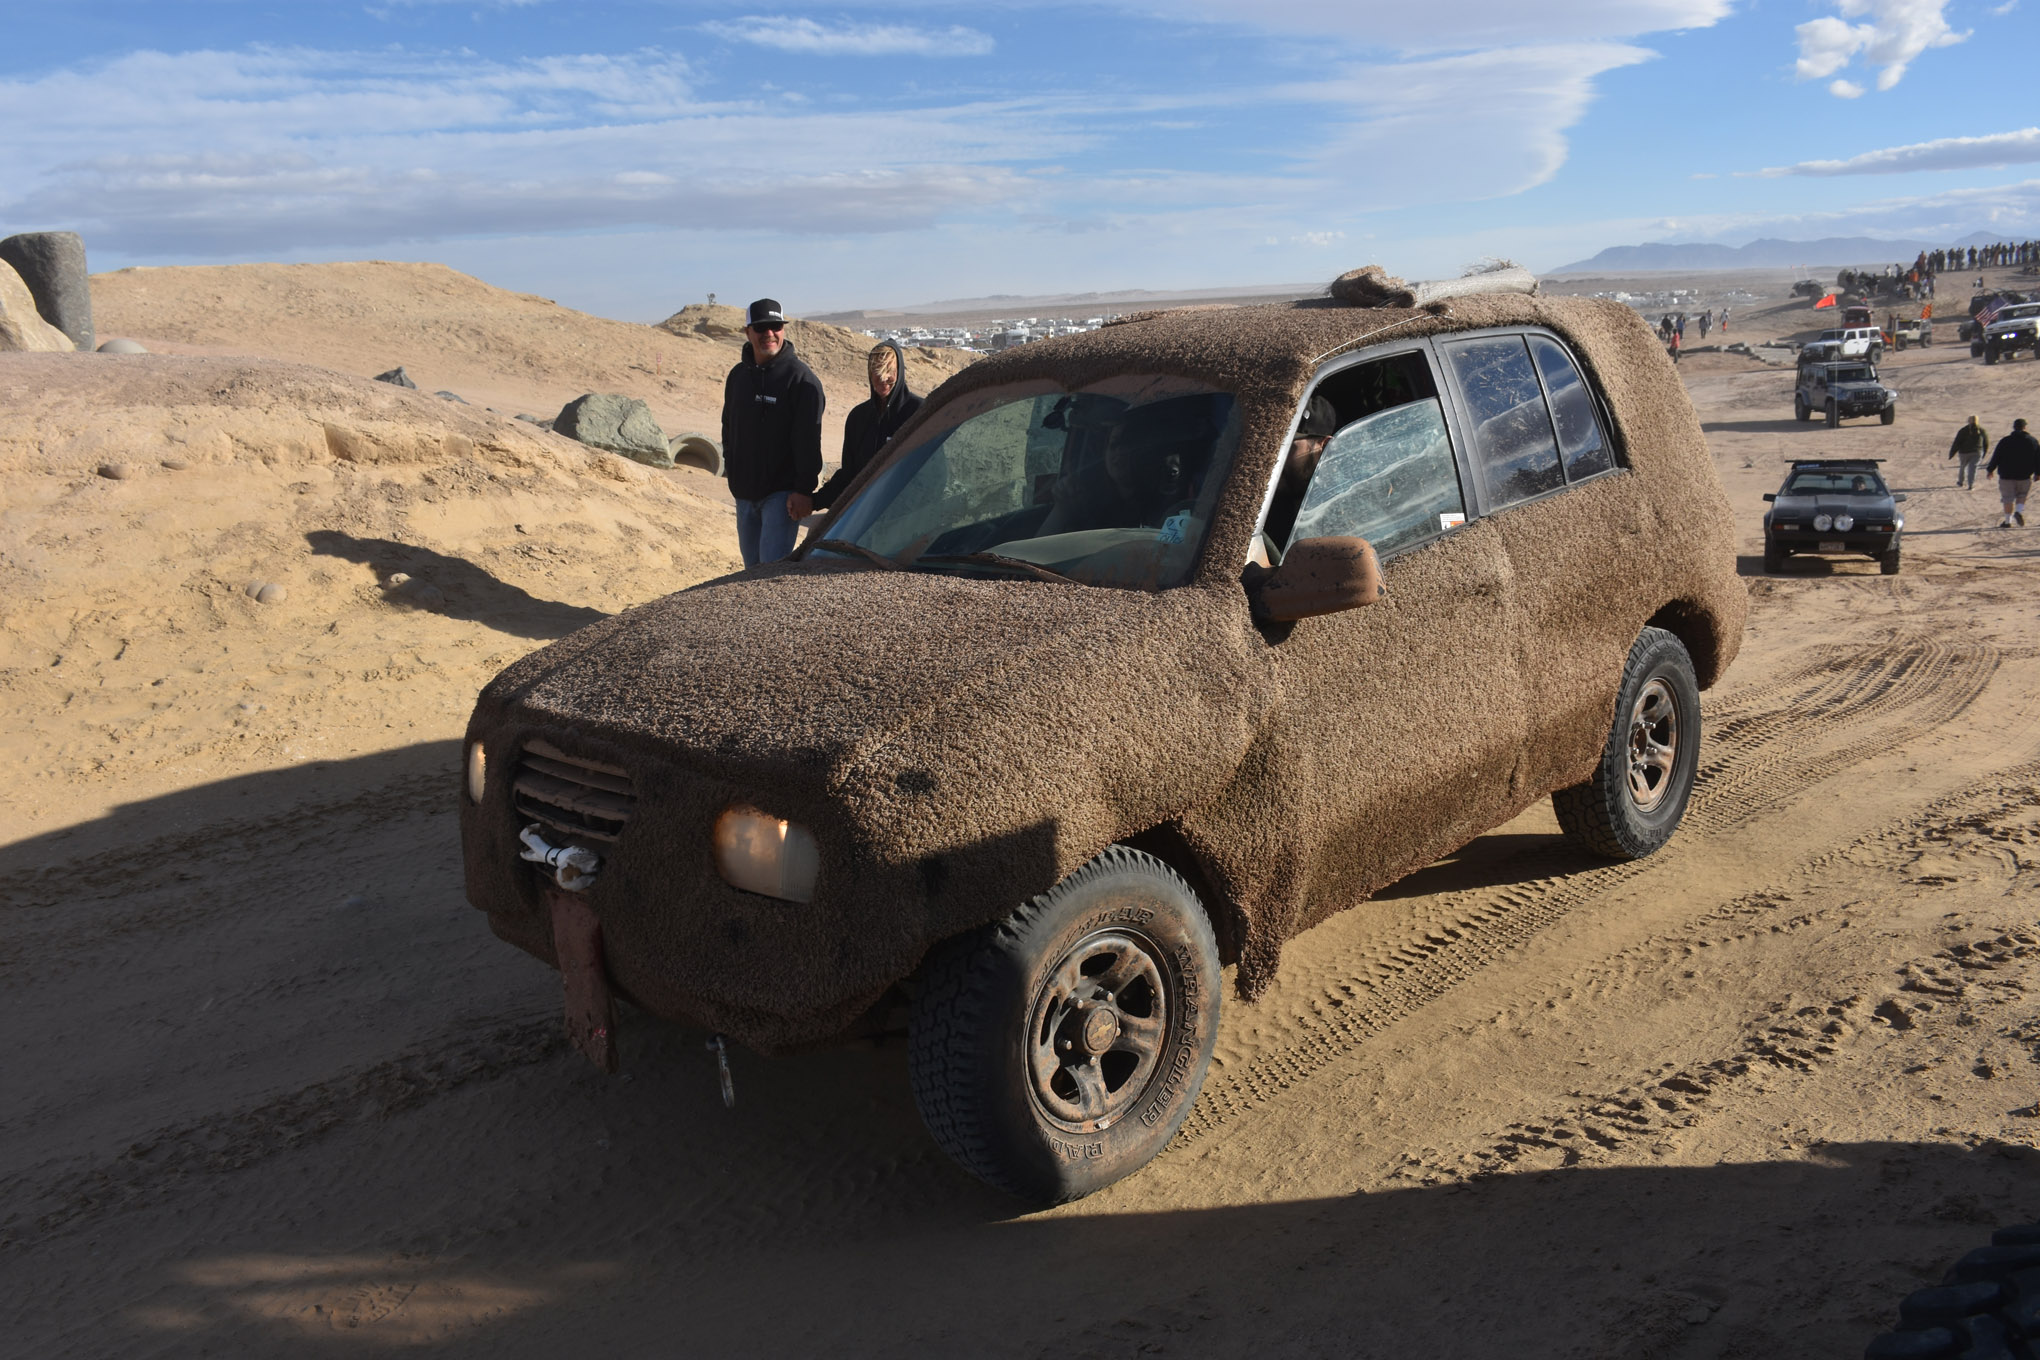 Is that the most annoying sound in the world? It's not every day you see Lloyd and Harry cruising the sheep dog at your favorite off-road event. It's good to see these guys are still friends after all those adventures and many years gone by. In all seriousness, we think that's a late-model Geo Tracker under that brown carpet. Whatever it is, seeing it wheel was almost as much fun as the guys driving it were having!